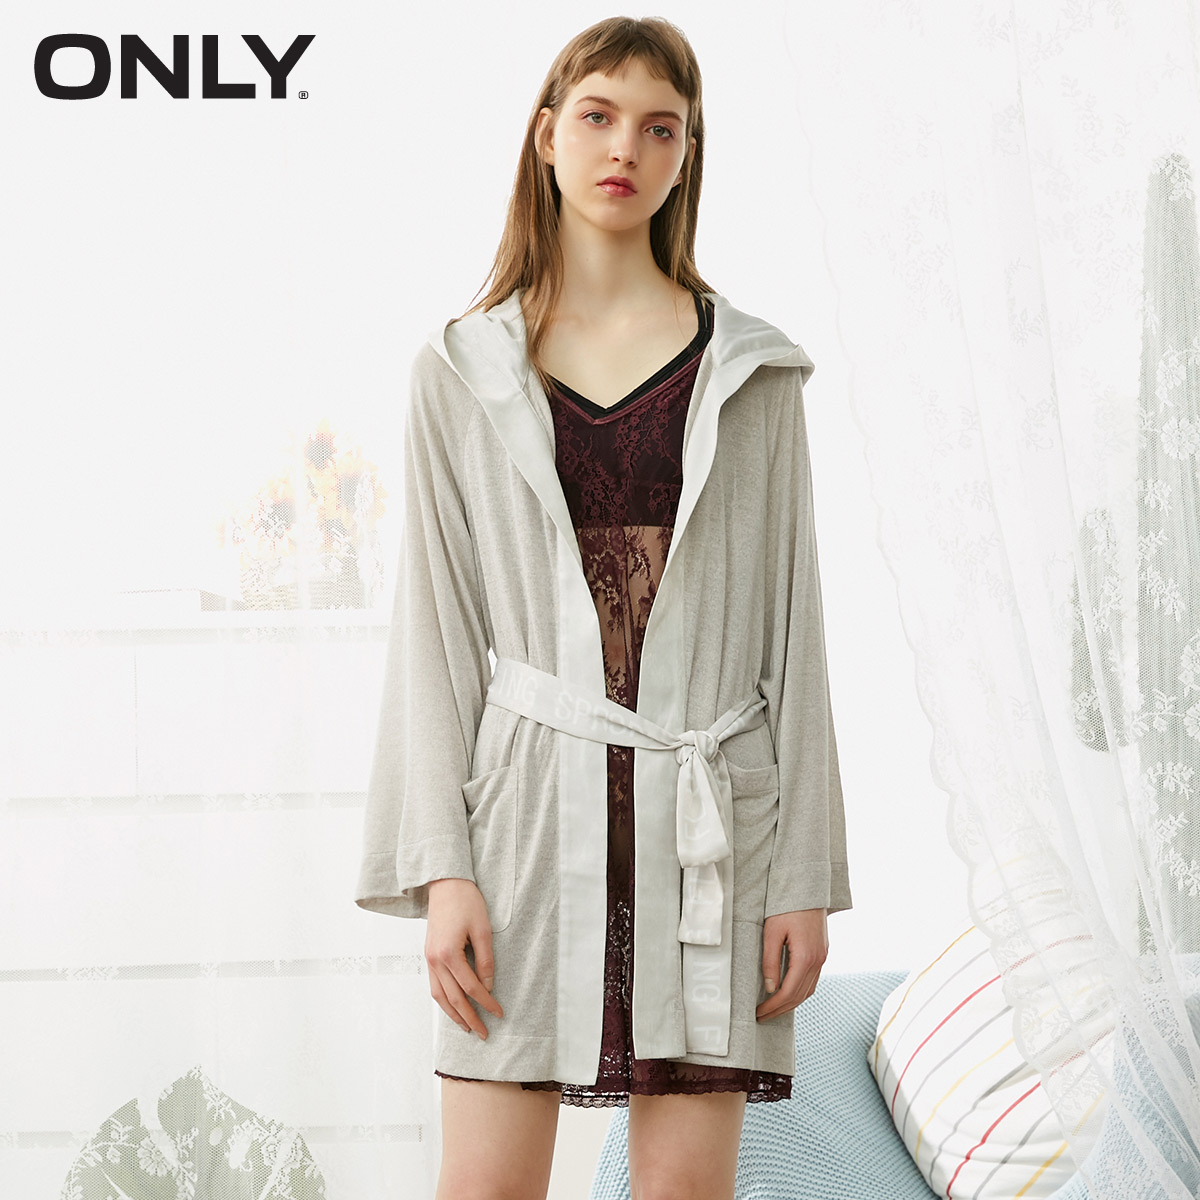 ONLY  Spring Summer New Women's Loose Fit Satin Splice Hooded Night Gown  1182R7501